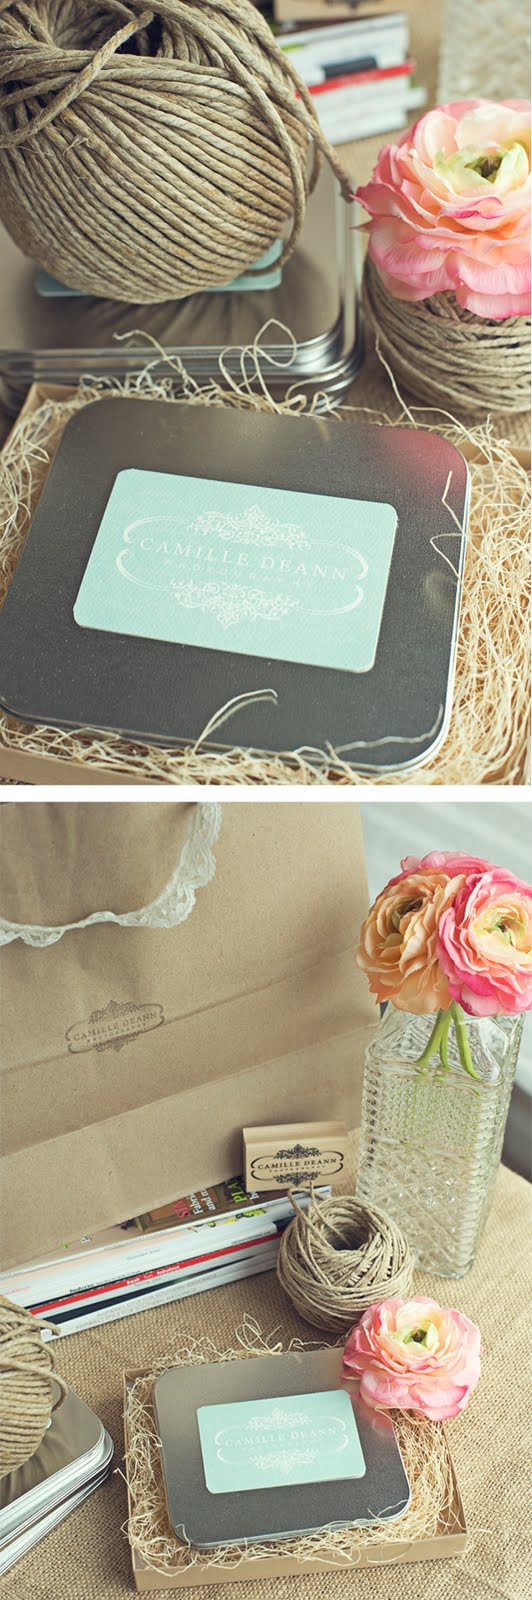 We love this packaging from Camille Deann Photography ! She has great taste and her branding is just divine. Love the natural products with ...